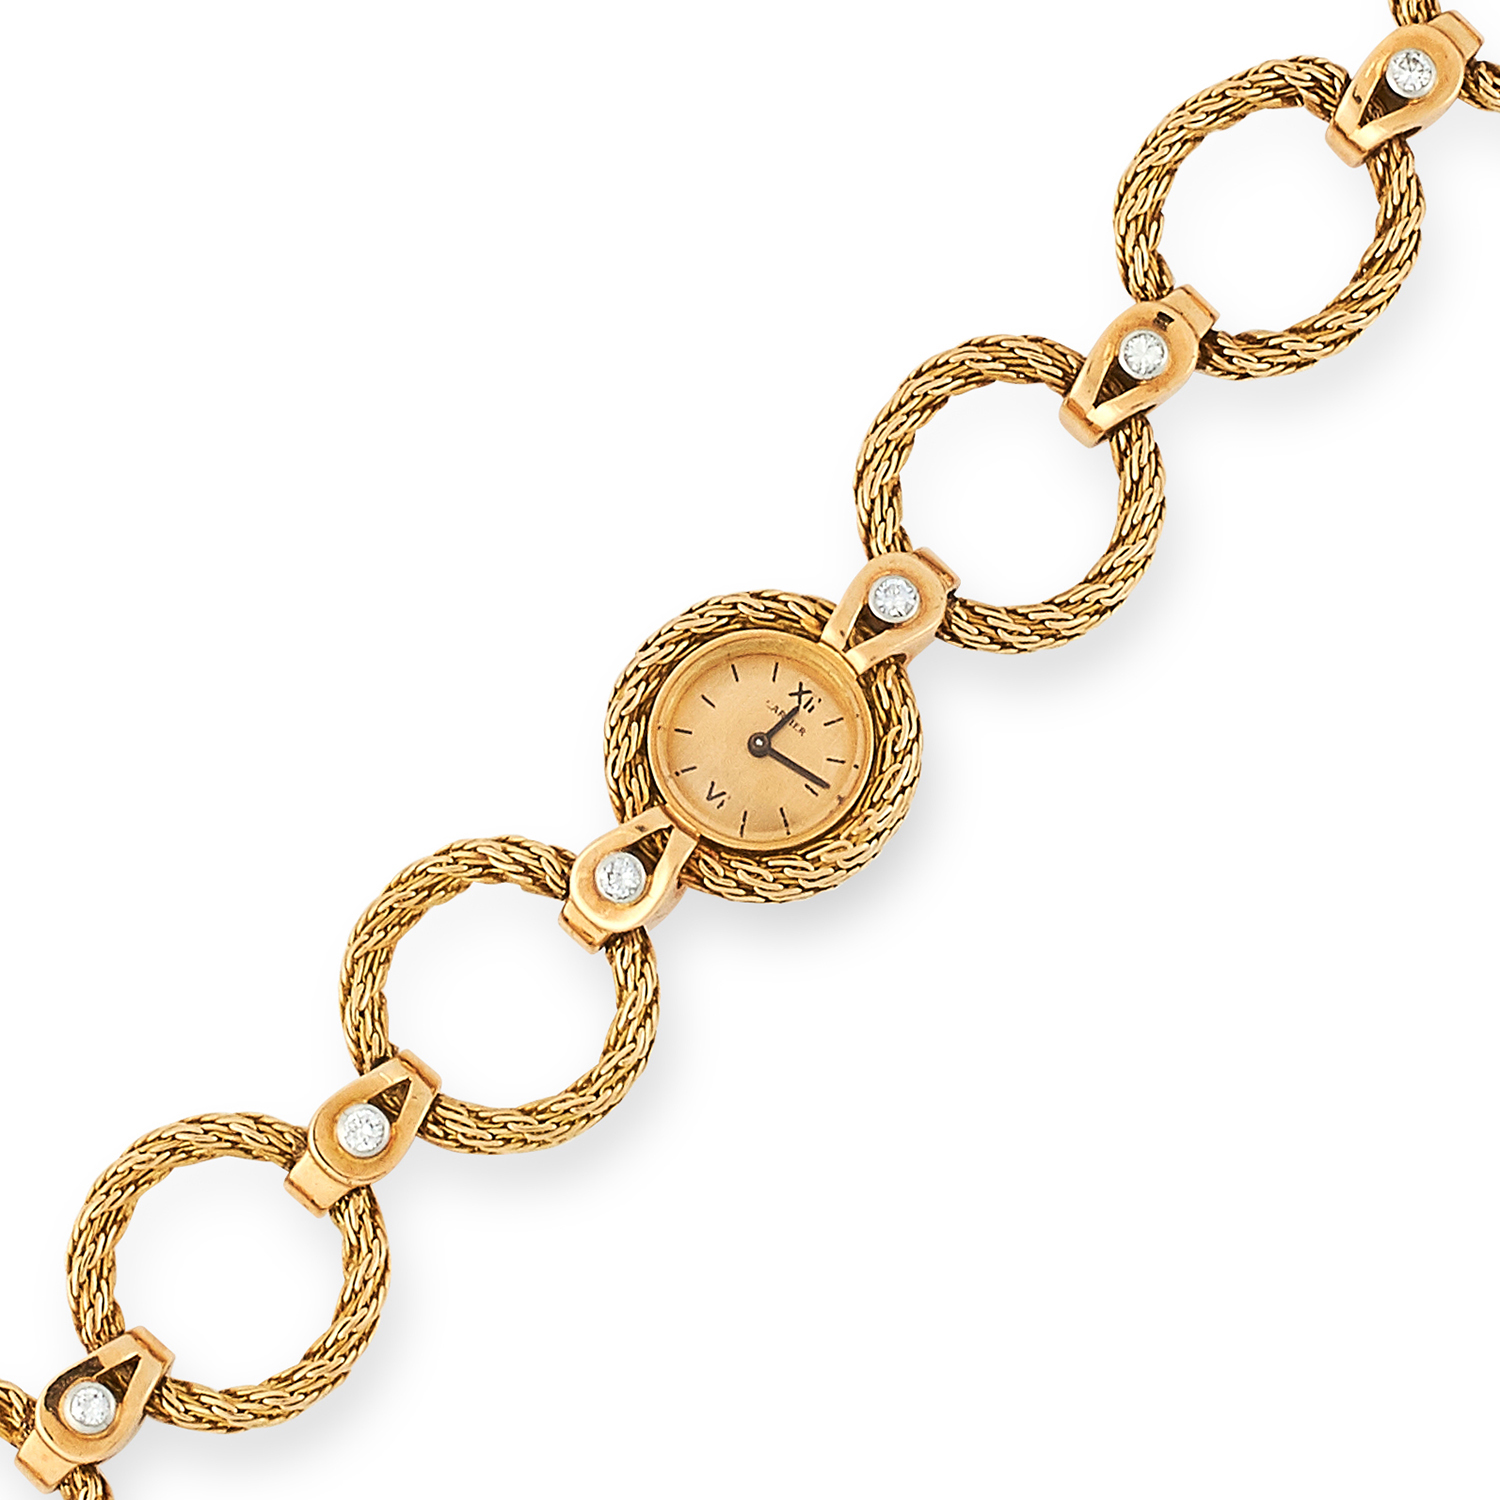 A VINTAGE LADIES DIAMOND WRISTWATCH, CARTIER comprising of textured gold hoop links set with round - Image 2 of 2